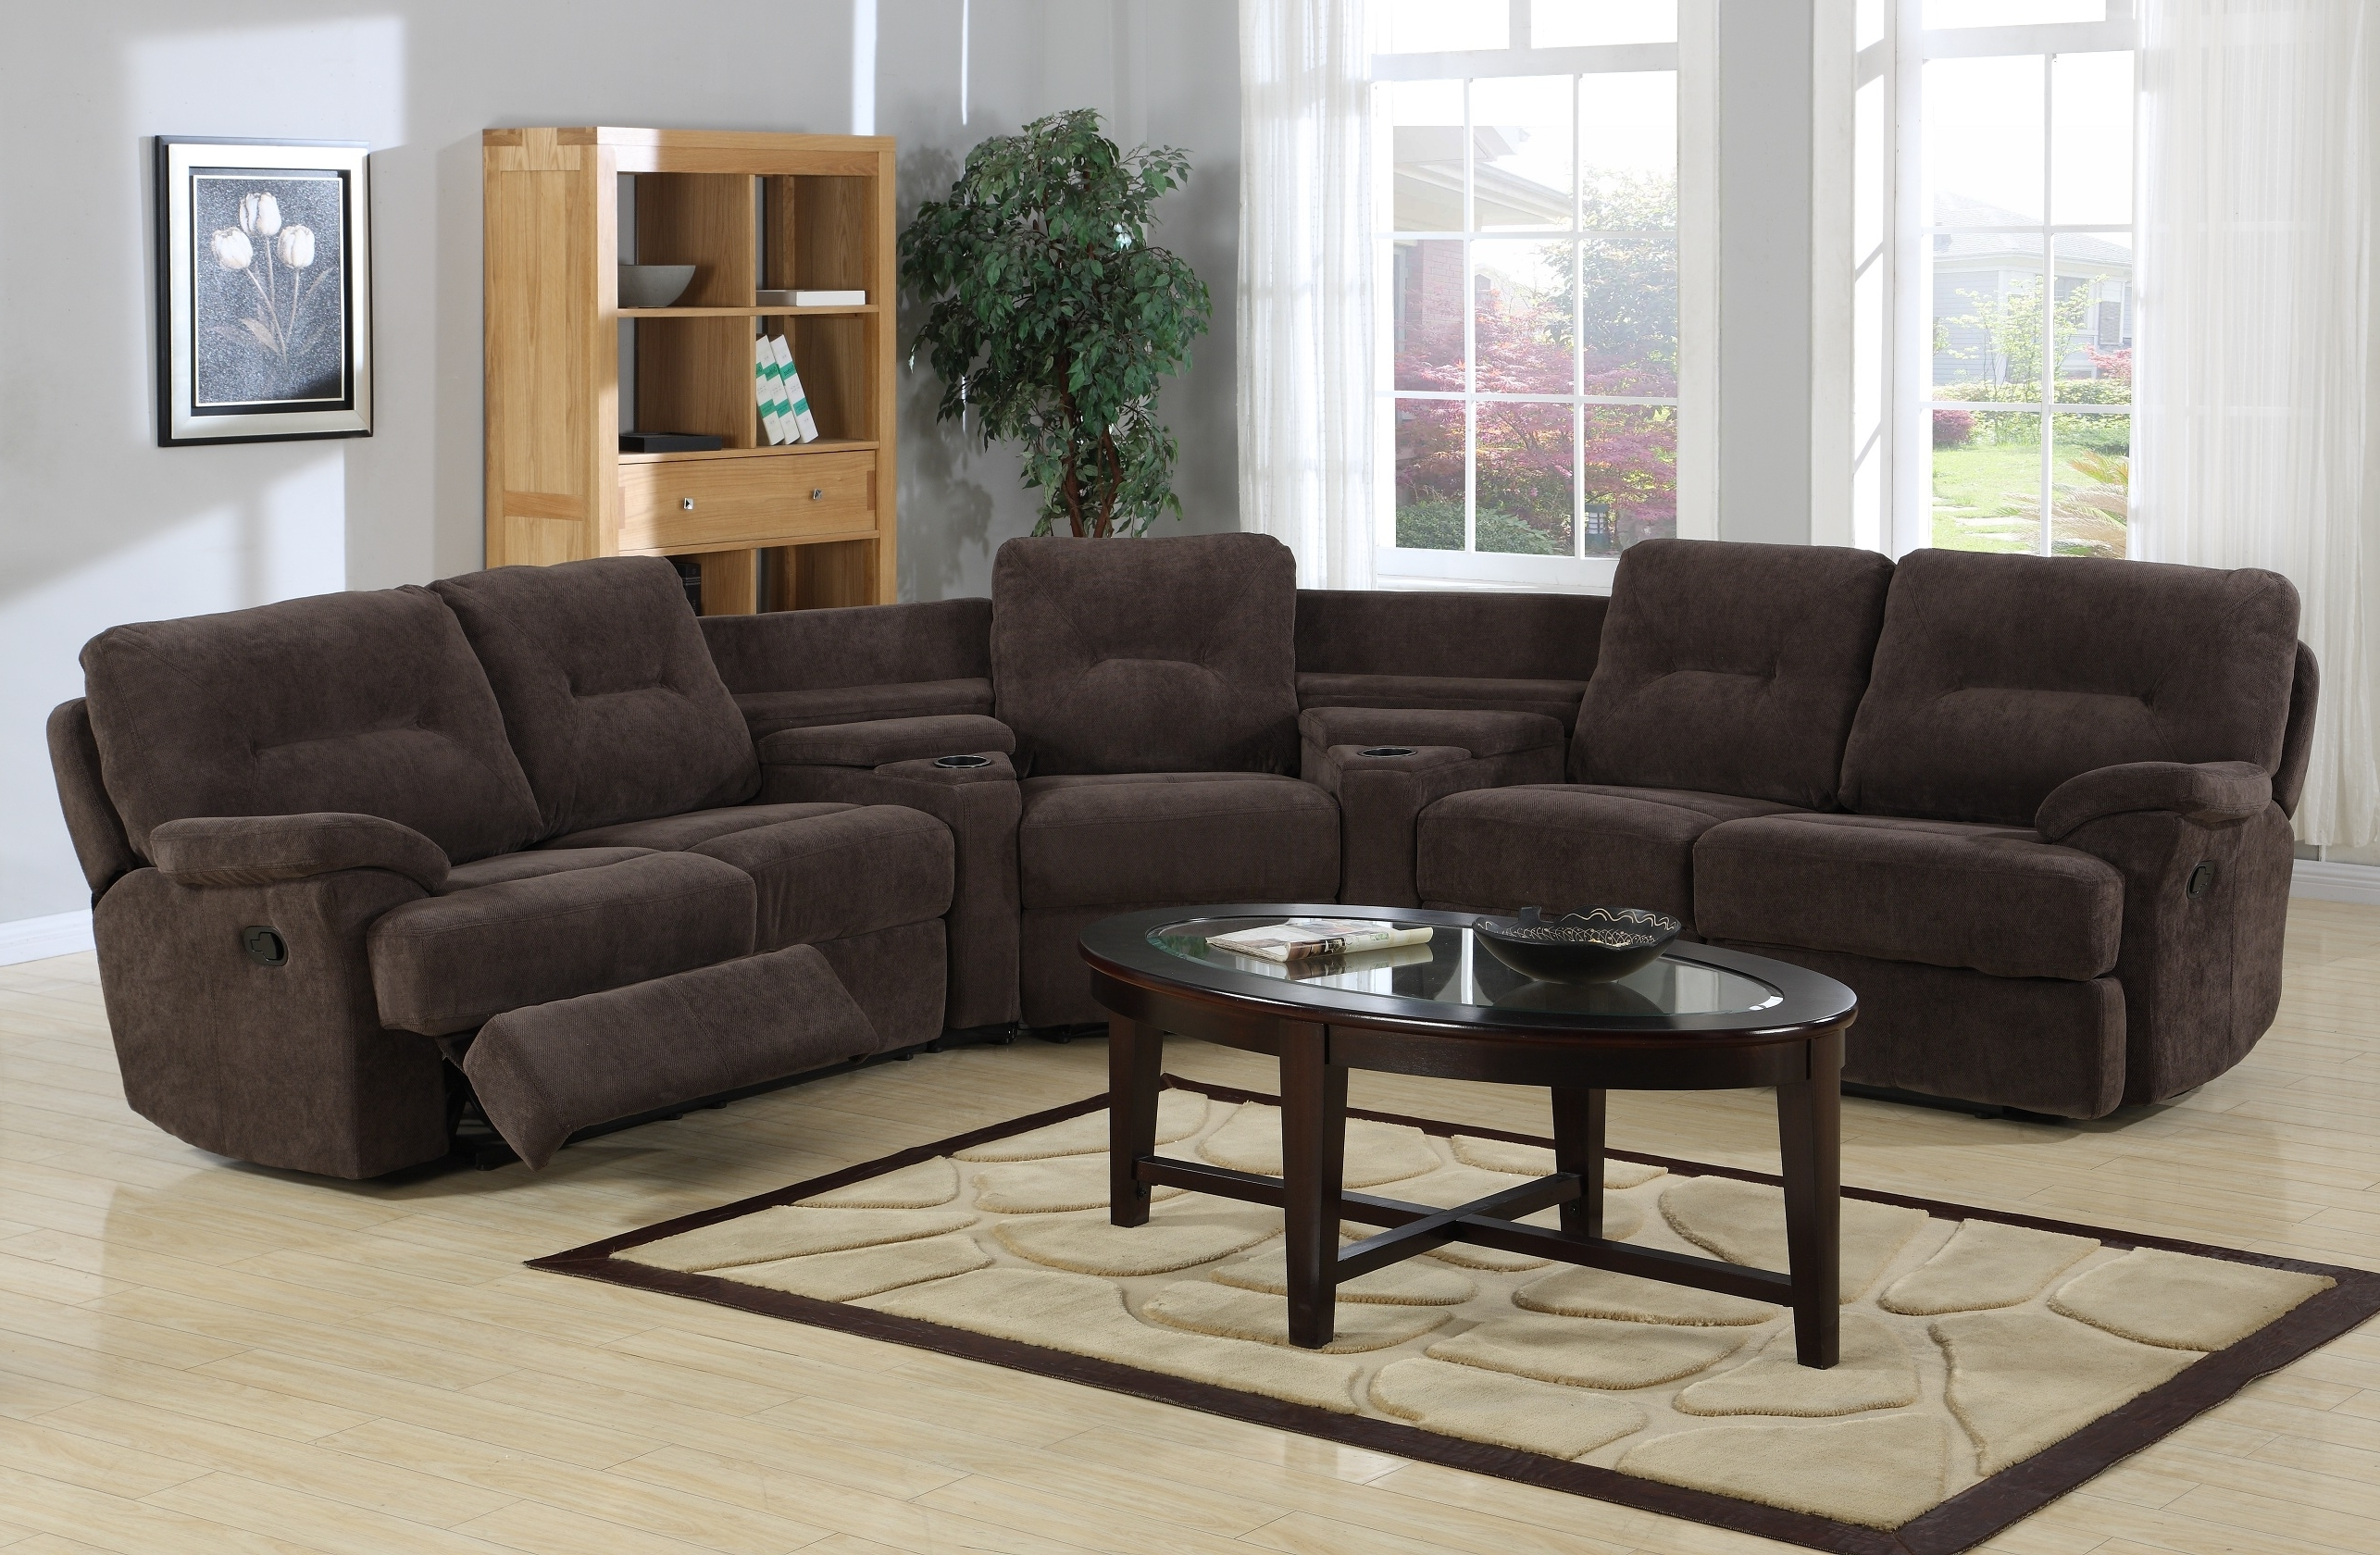 Sectional Sofa With Chaise Tags : Leather Sectional Sofa With Regarding Most Popular Curved Recliner Sofas (View 19 of 20)